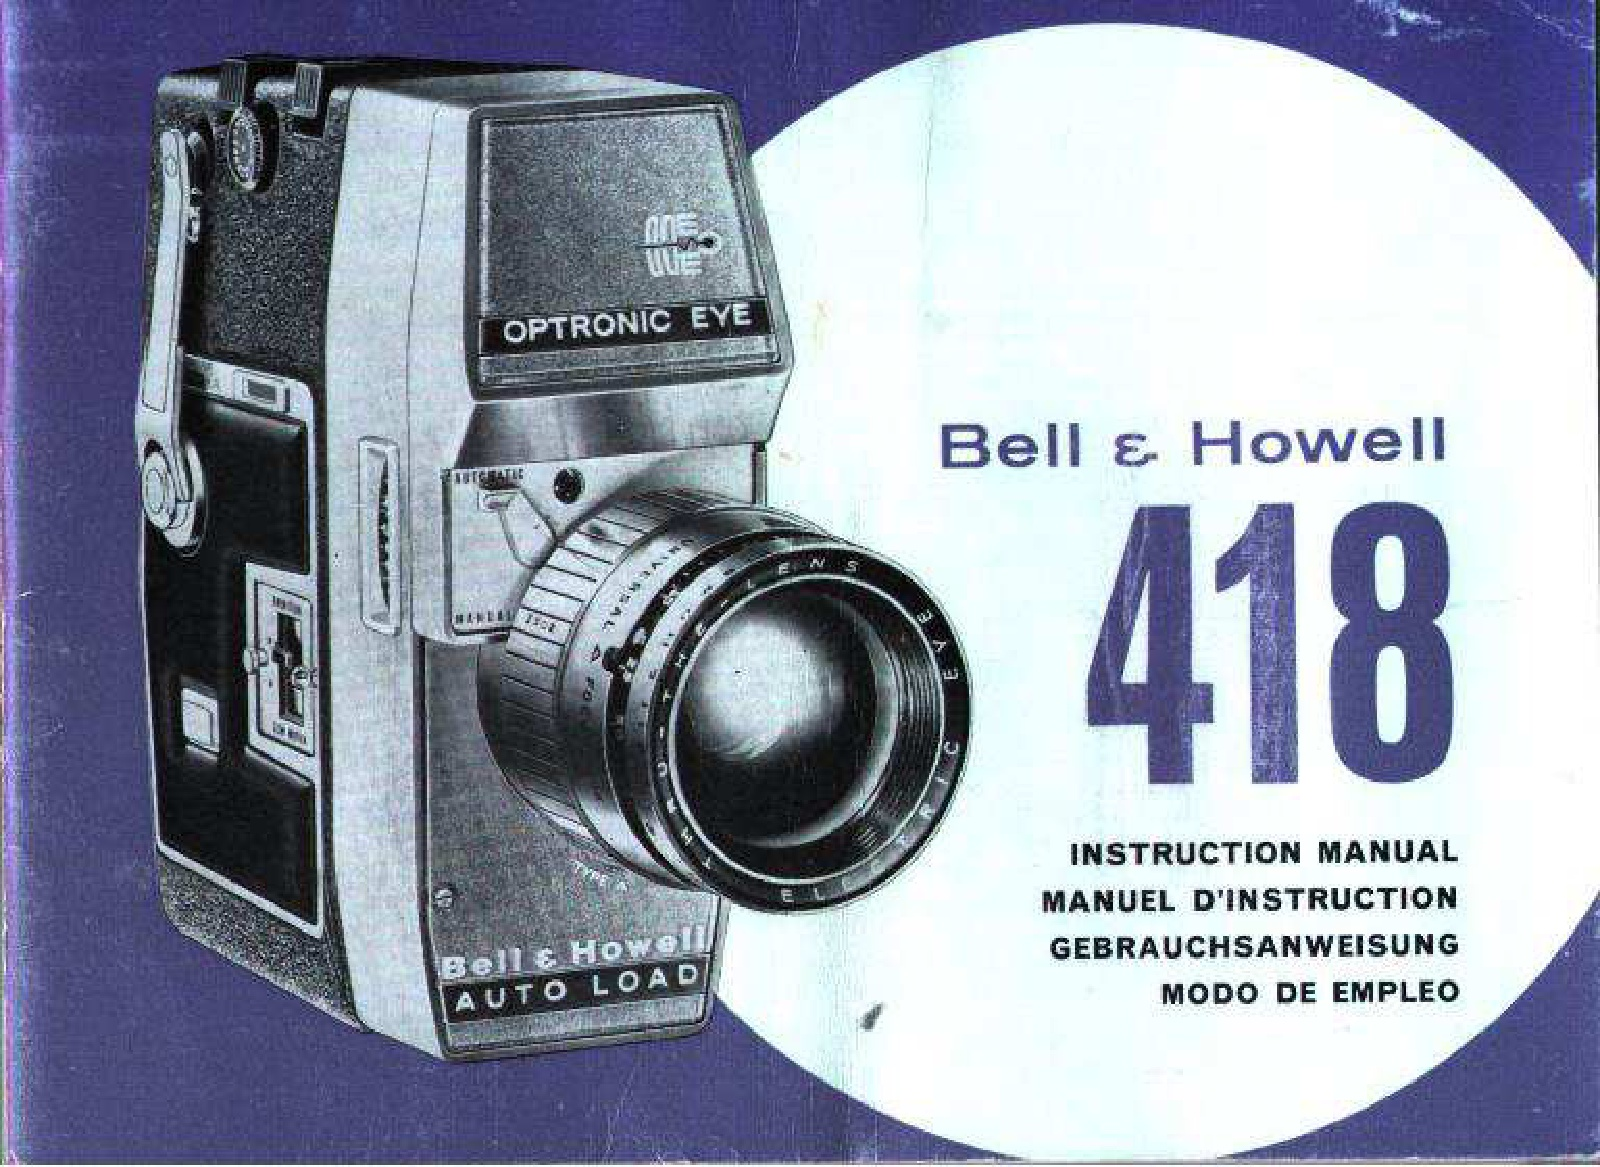 Bell&Howell 418 Cartridge camera